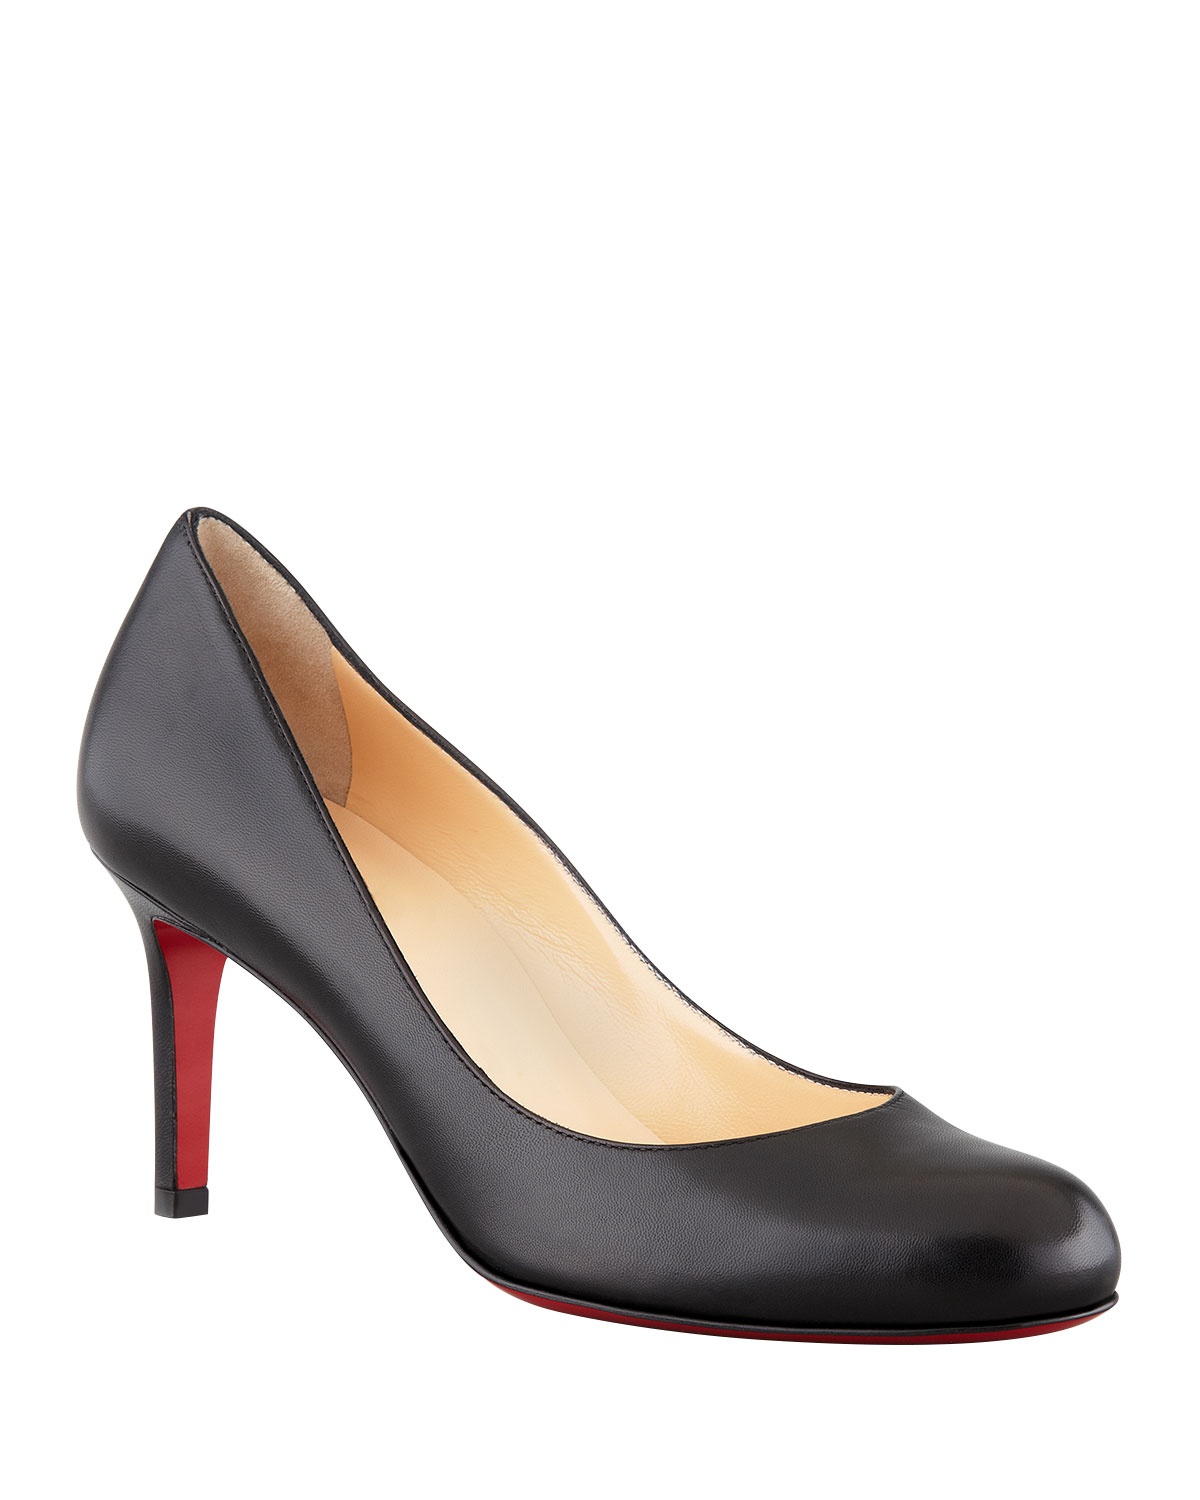 watch 5d32f 0b927 Simple Leather Red Sole Pumps